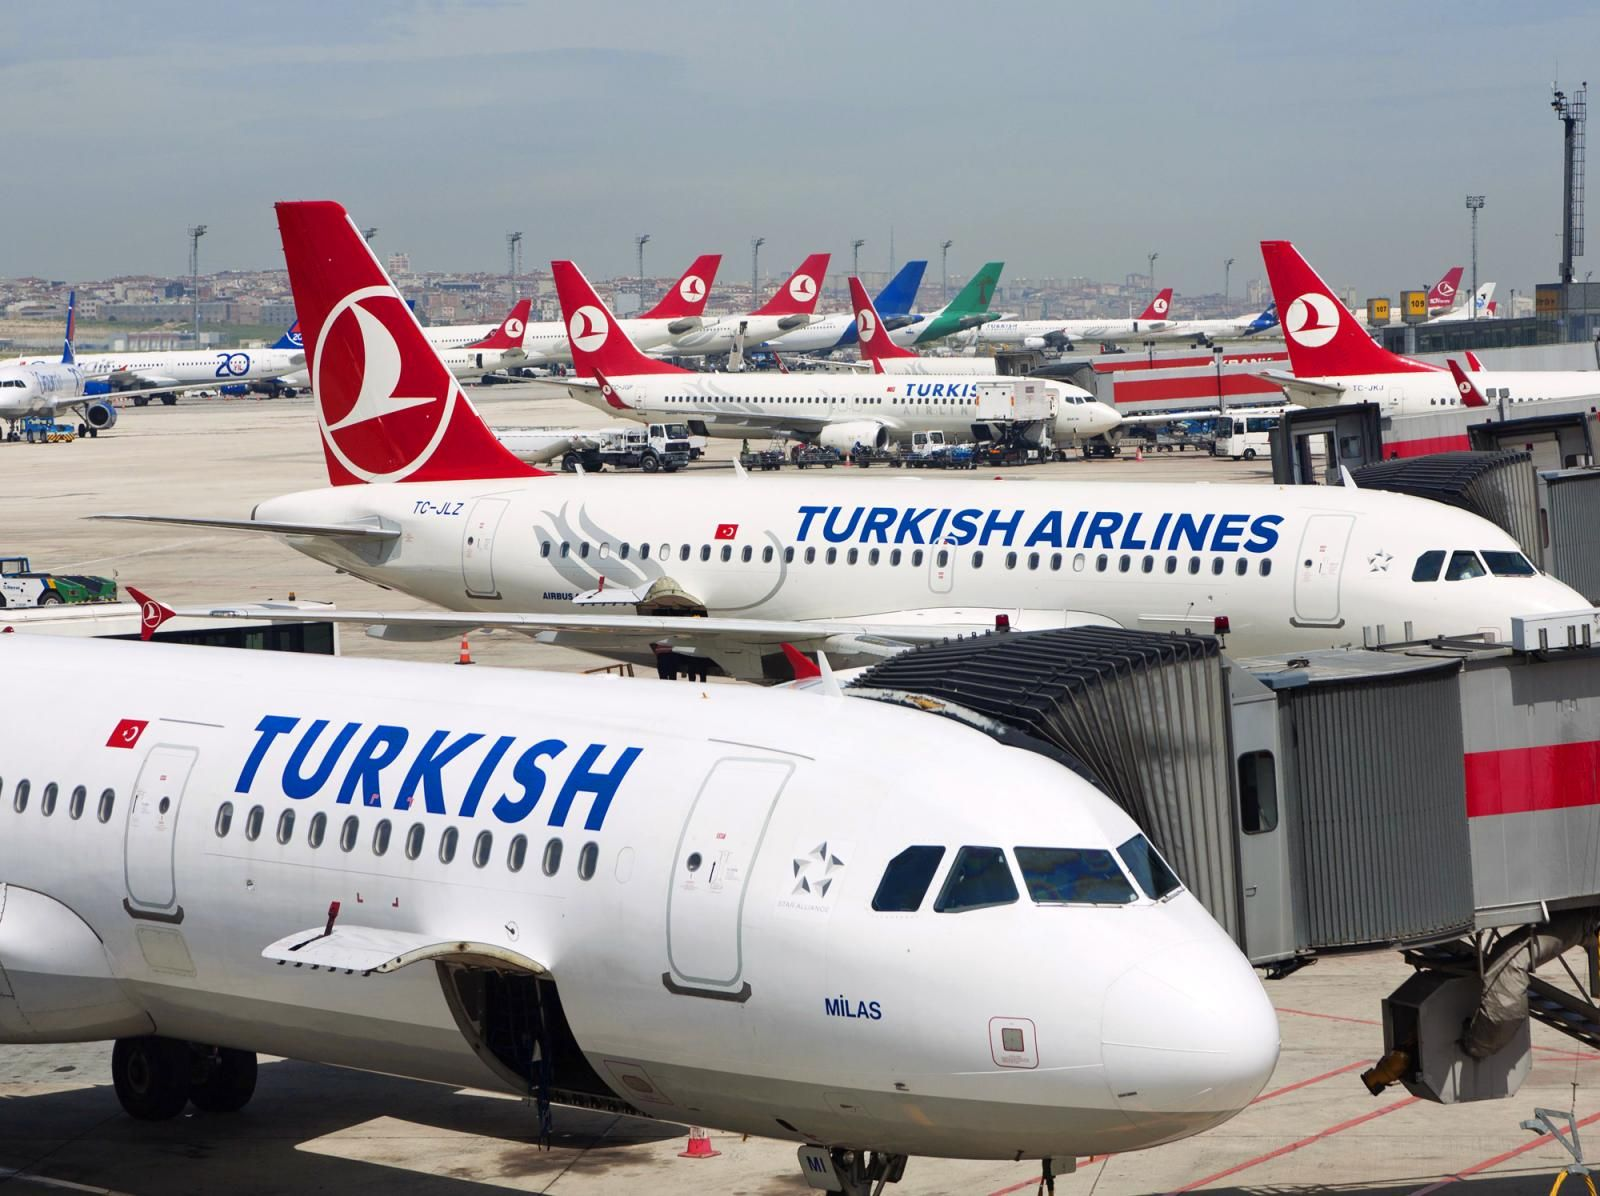 a-plane-of-the-turkish-airline